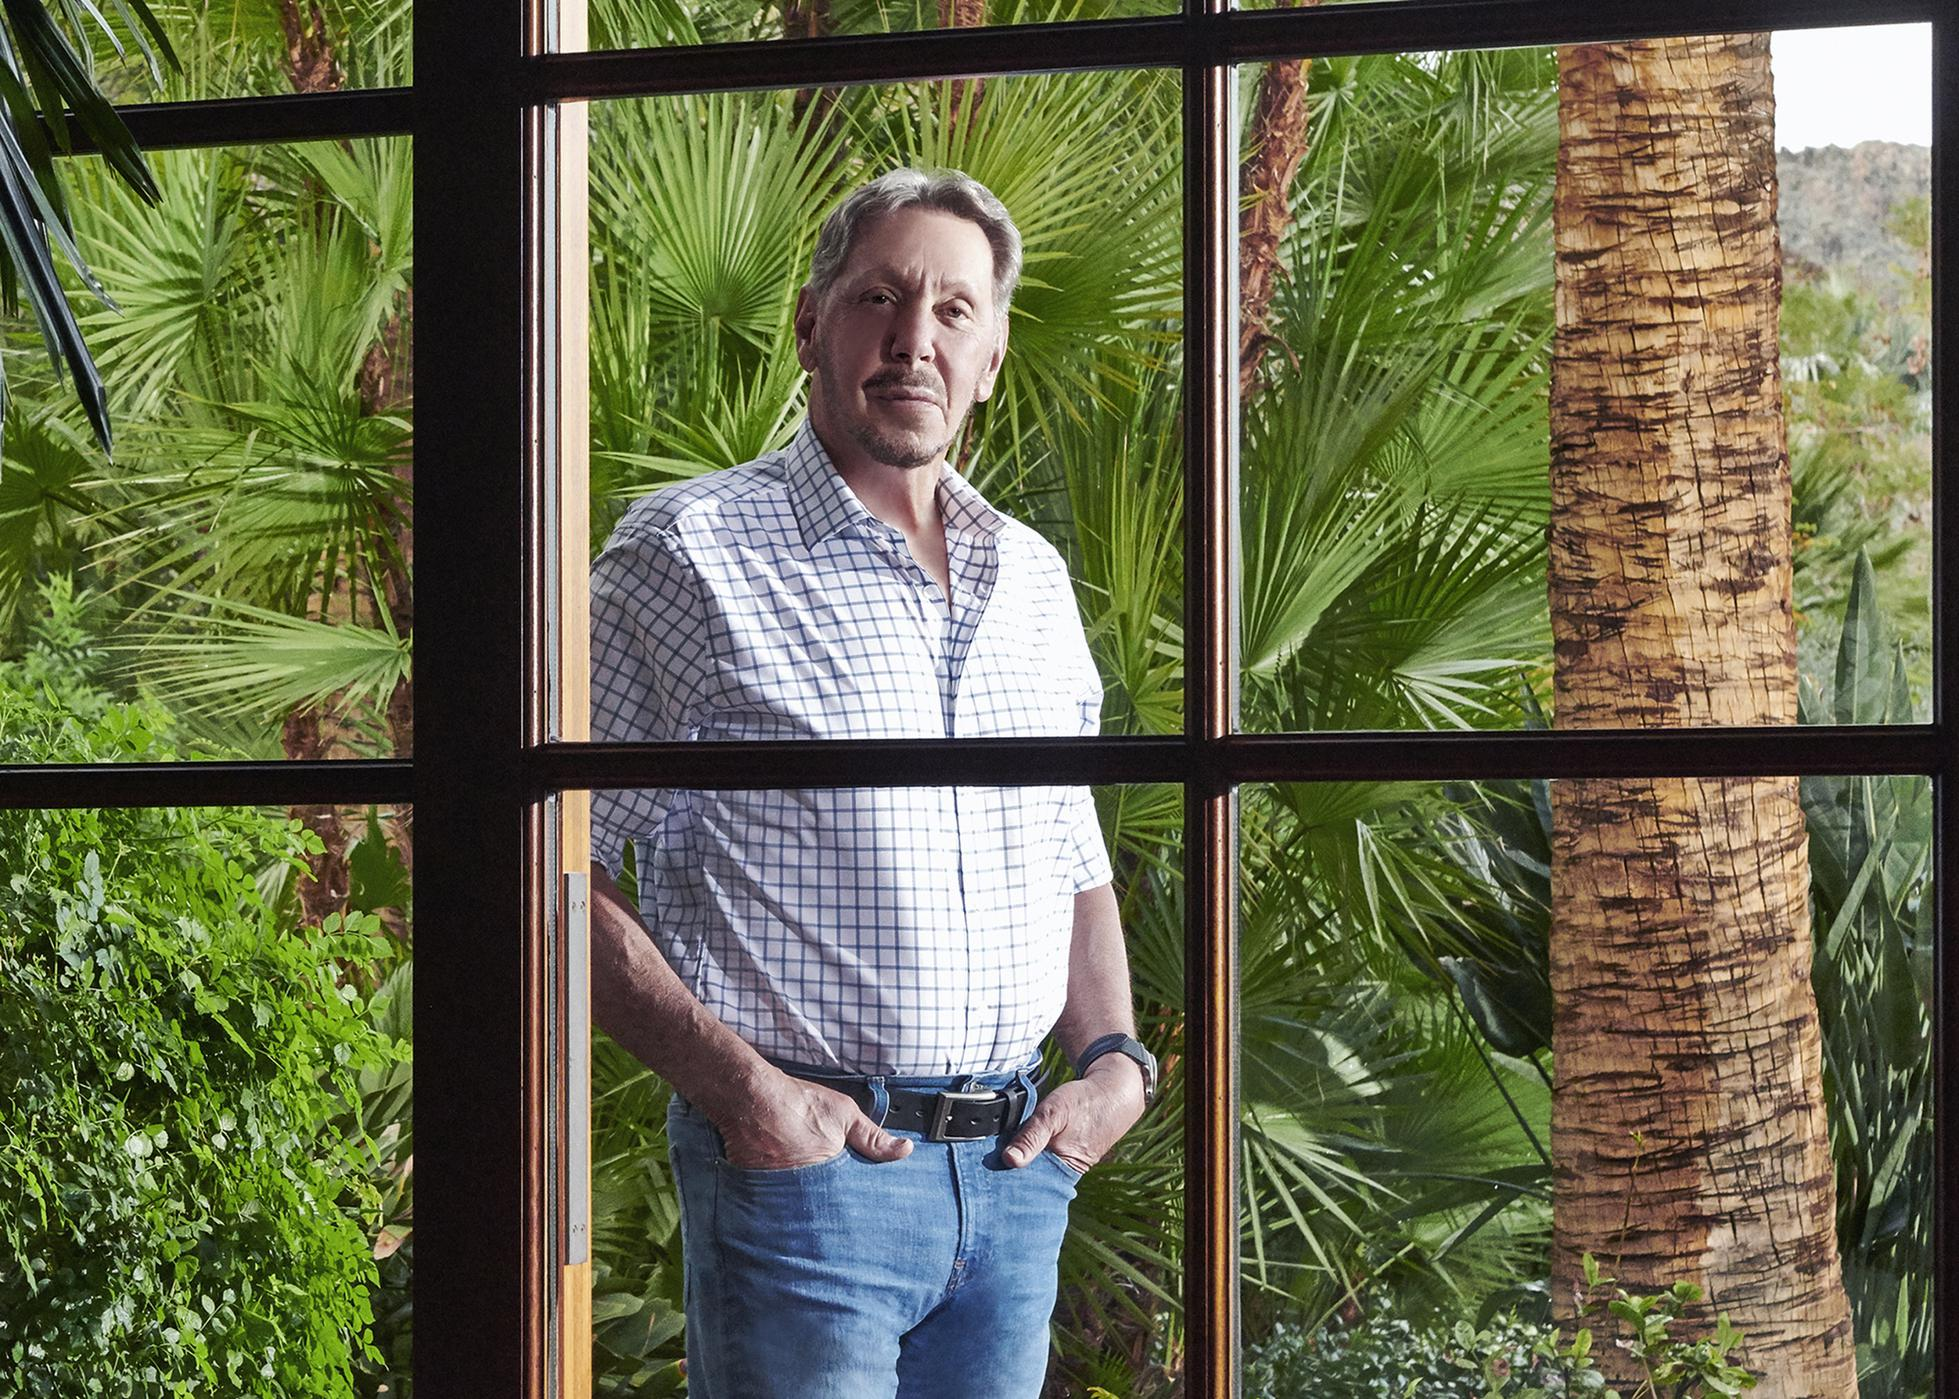 White man with gray hair surrounded by palm trees facing a window.